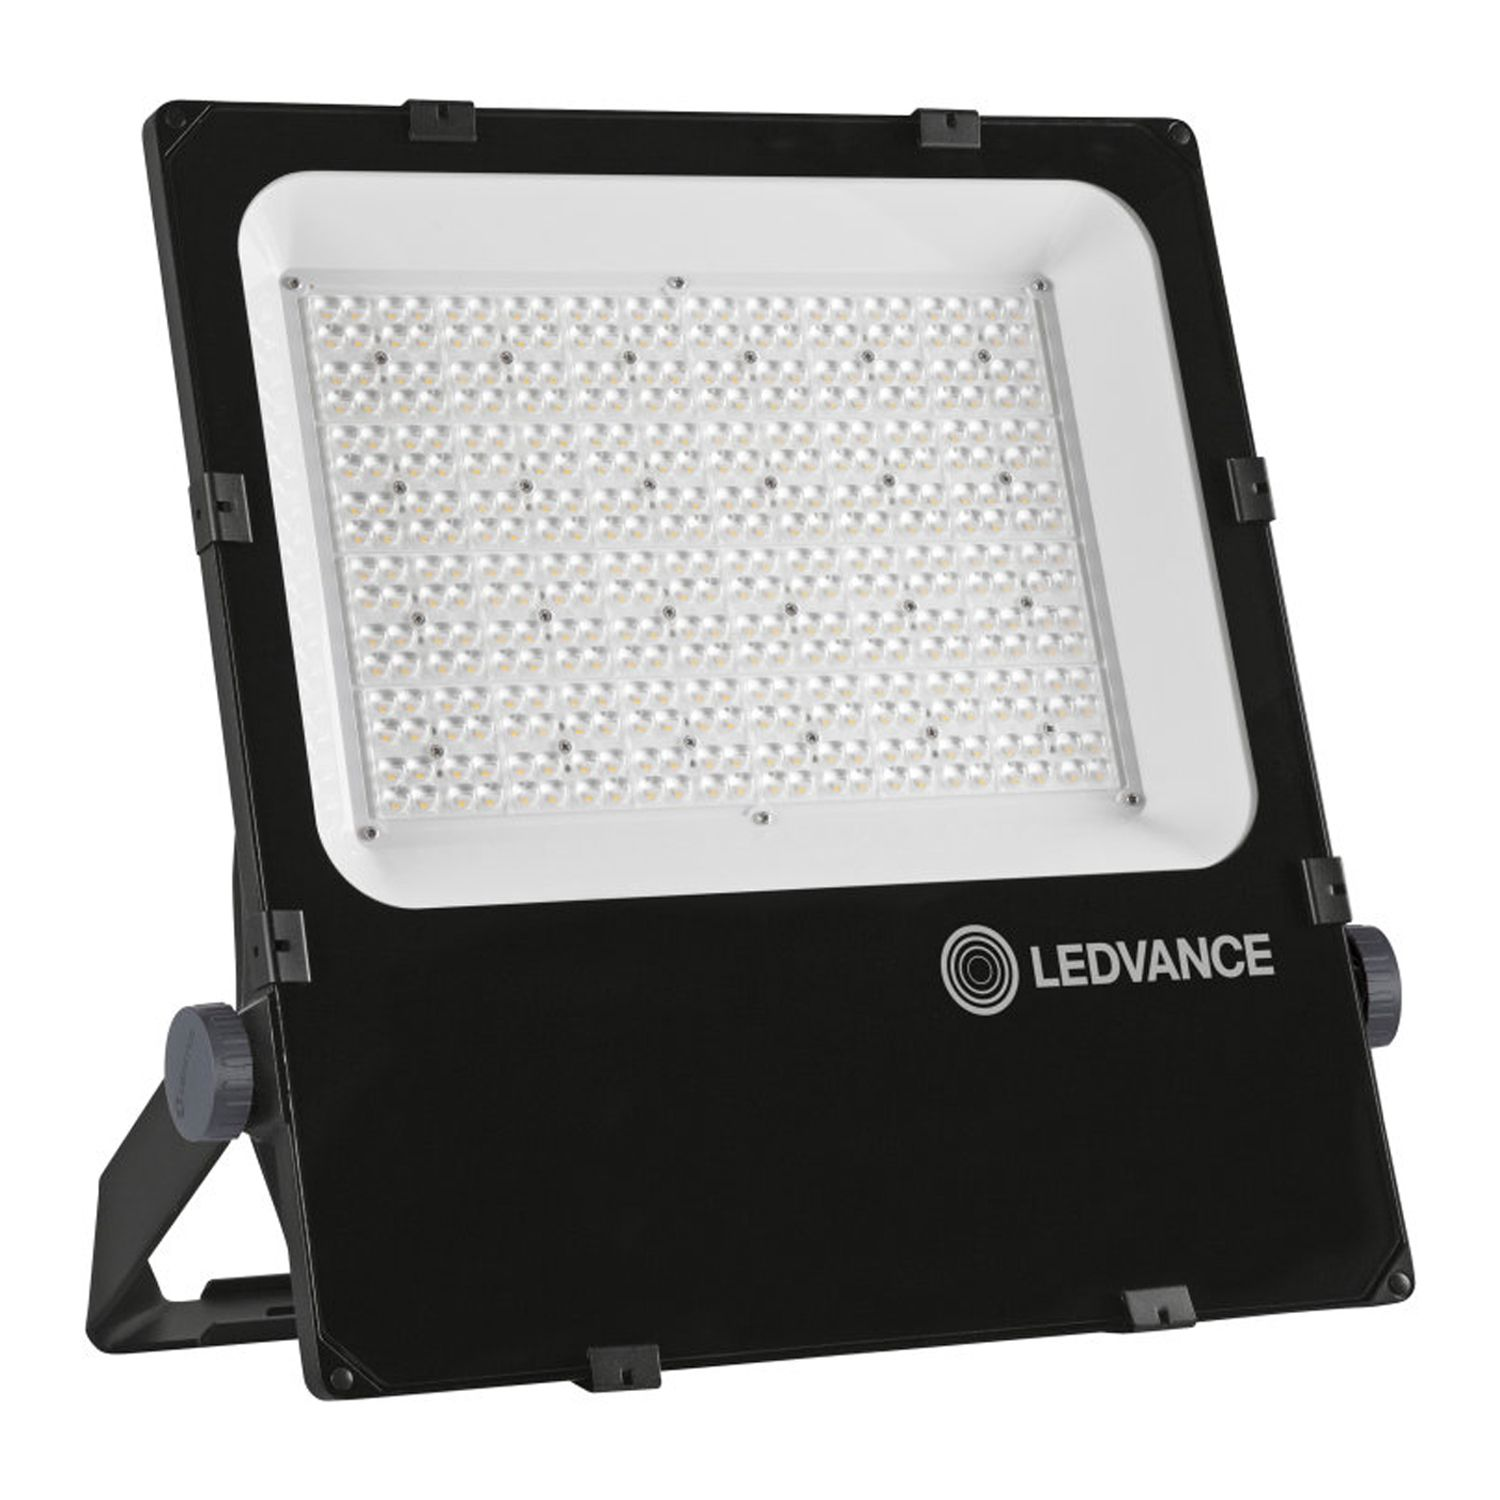 Ledvance LED Floodlight Performance 290W 3000K 38300lm IP66 | Warm White